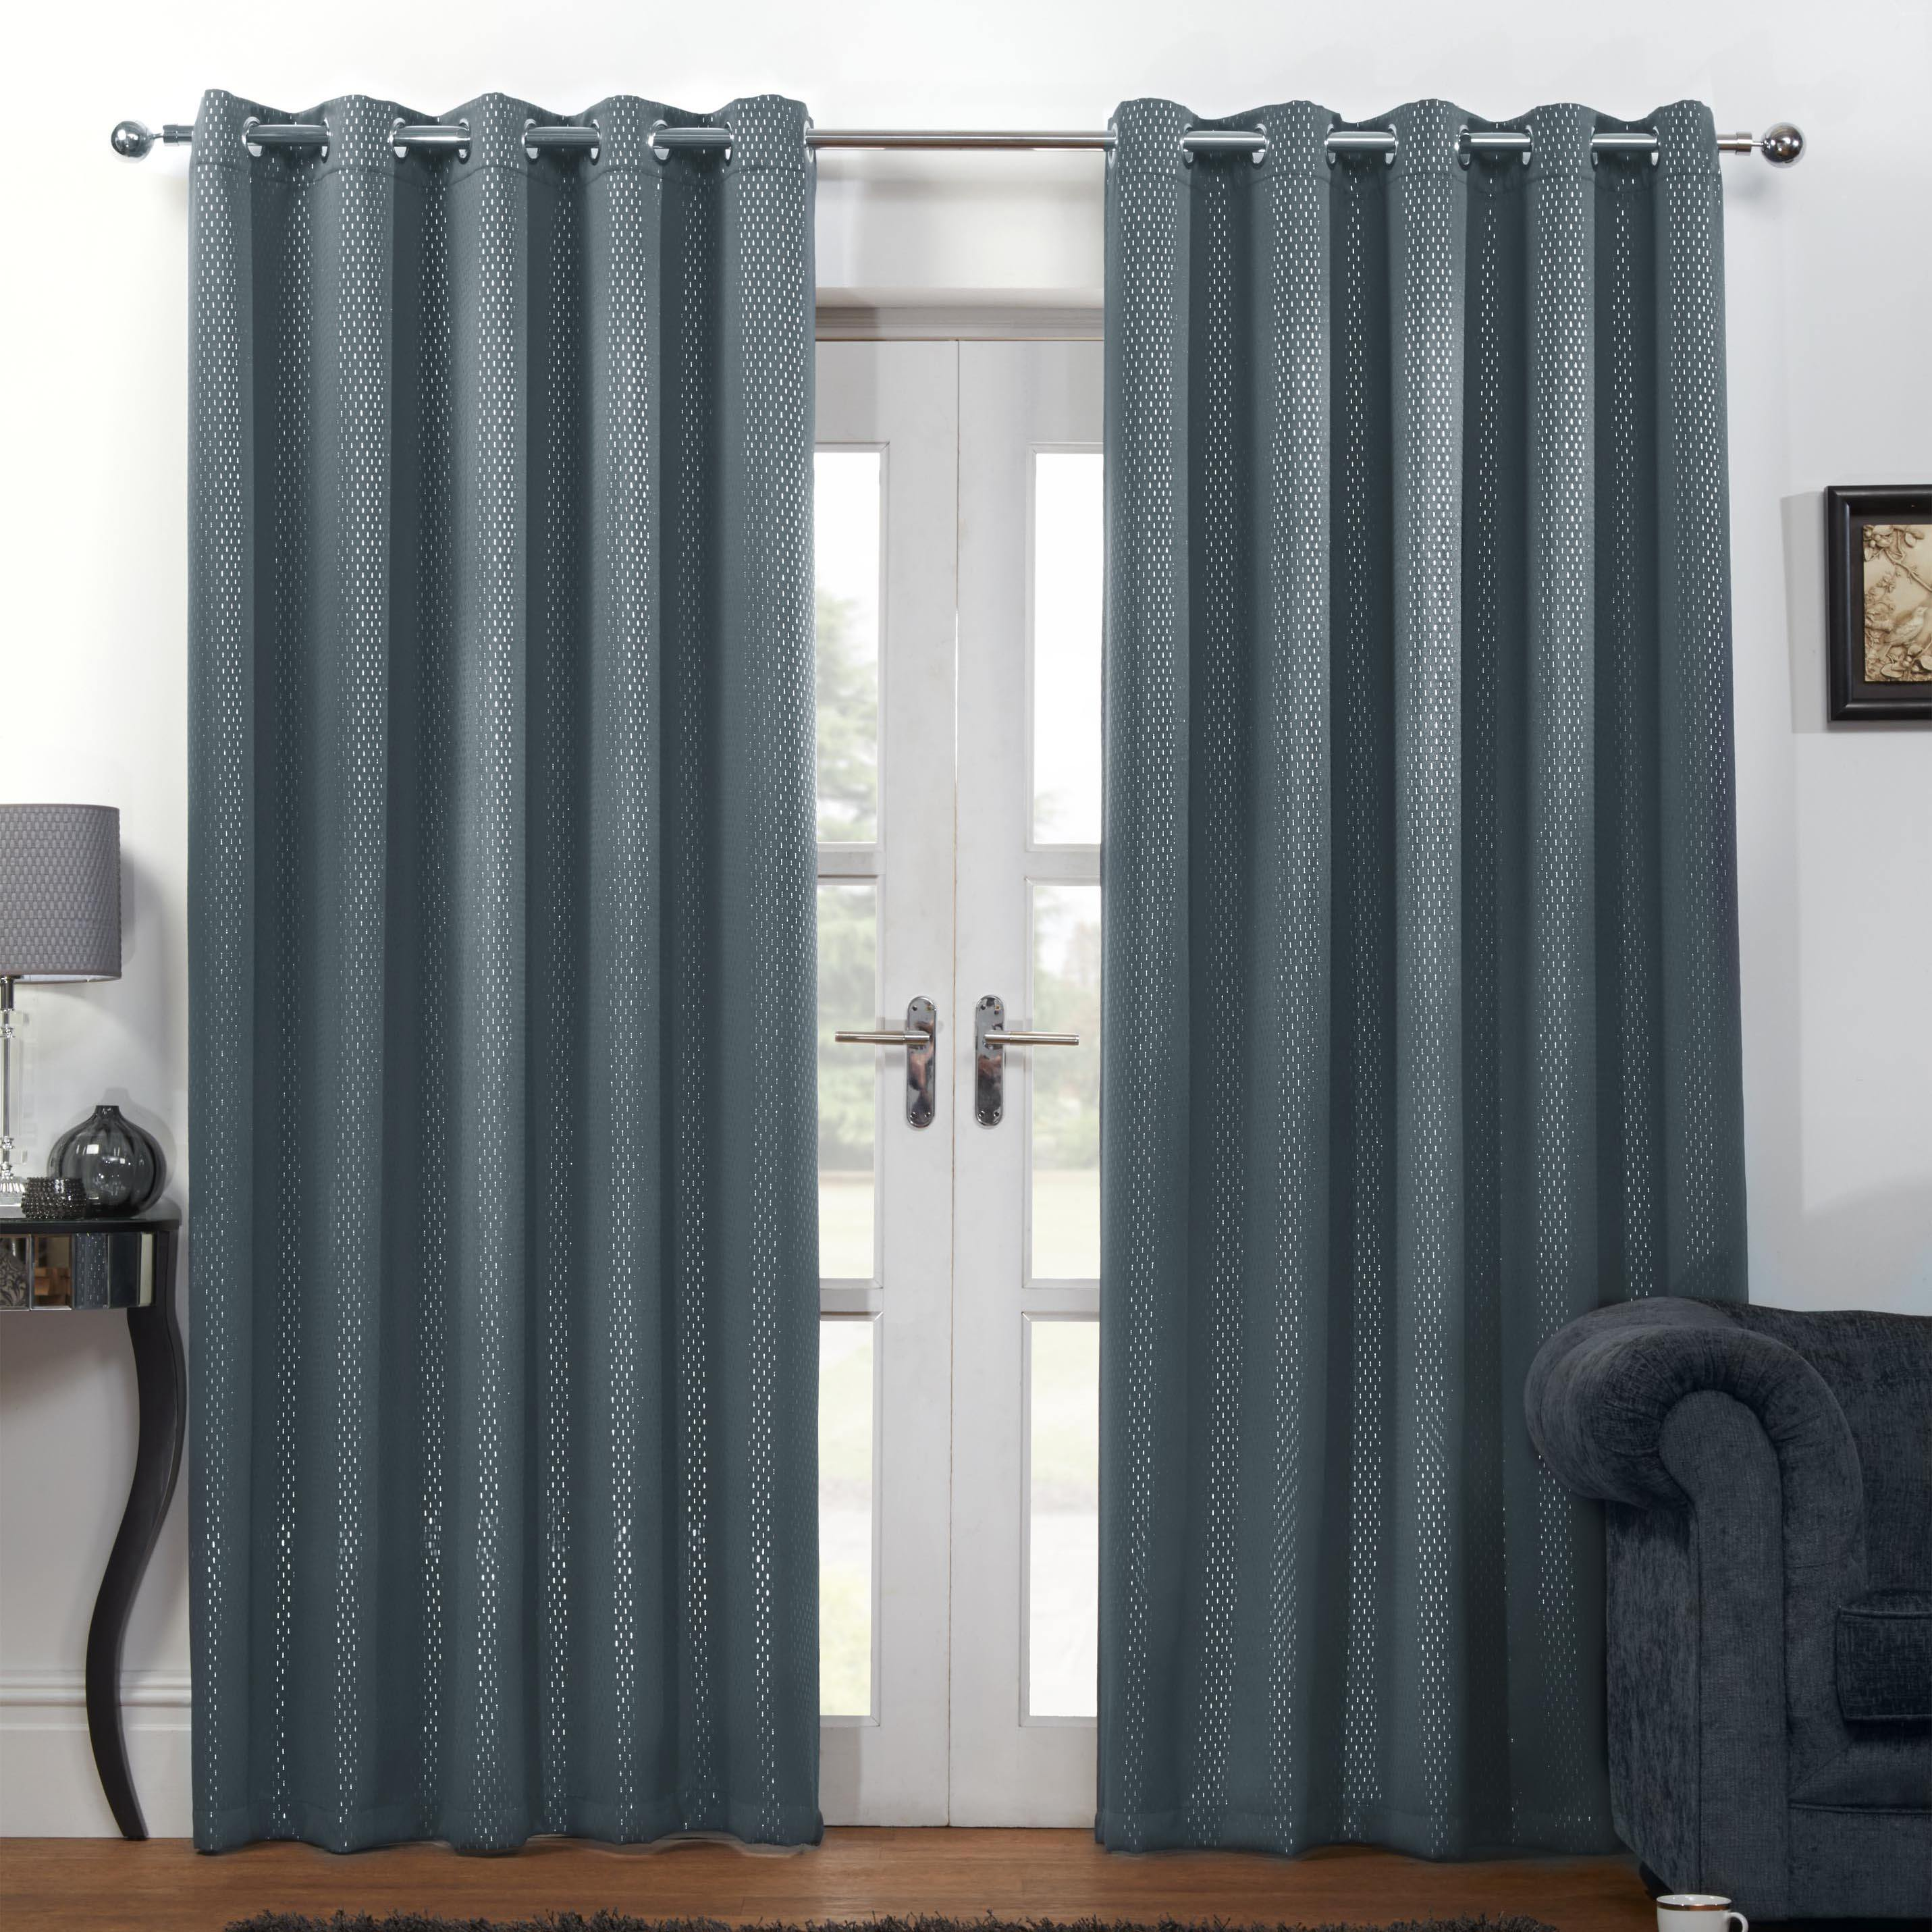 Good Carbon Thermal Blackout Ready Made Eyelet Curtains